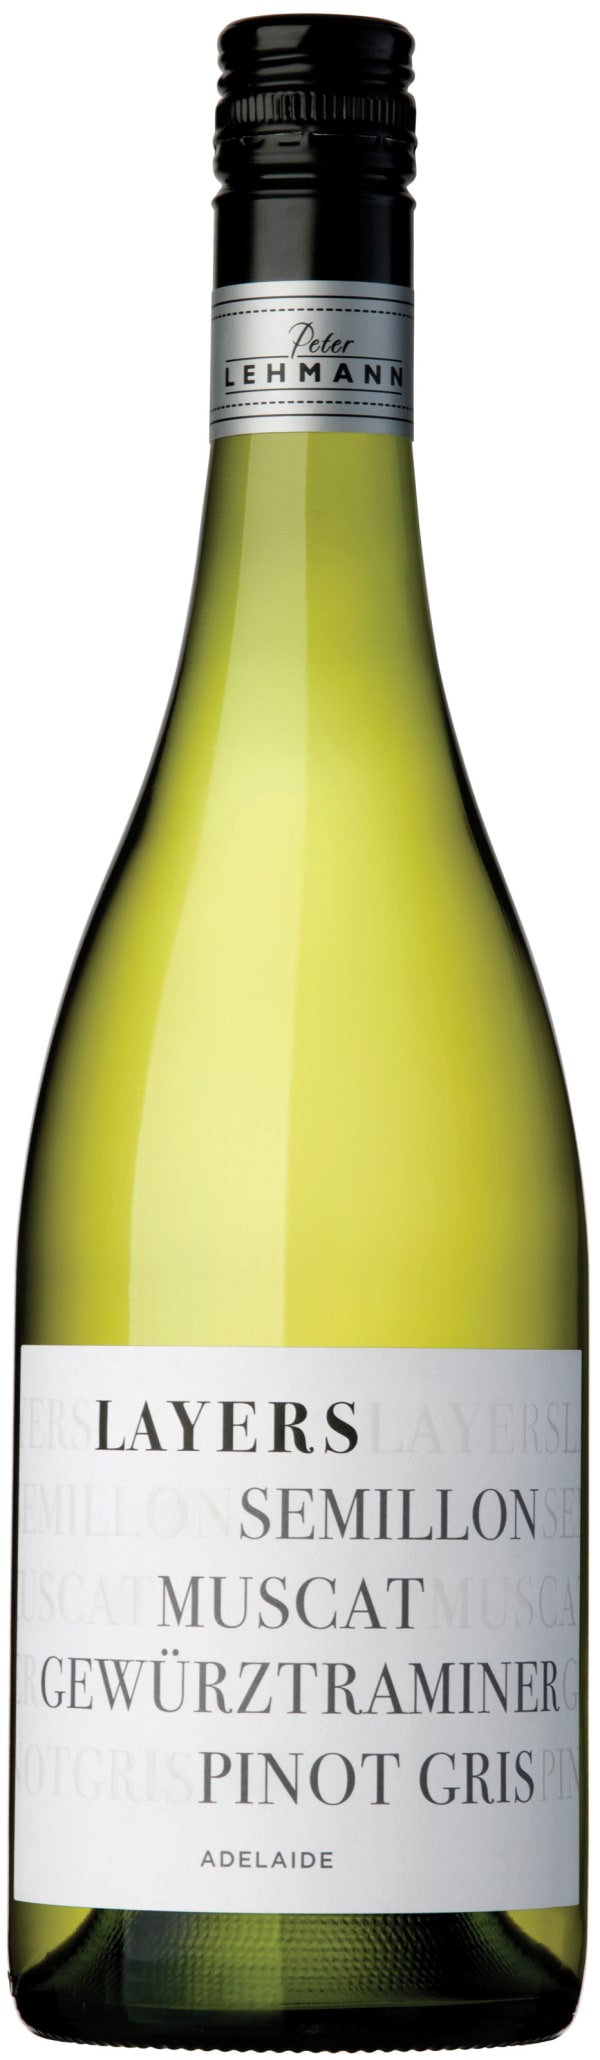 Peter Lehmann Layers White Blend 2019